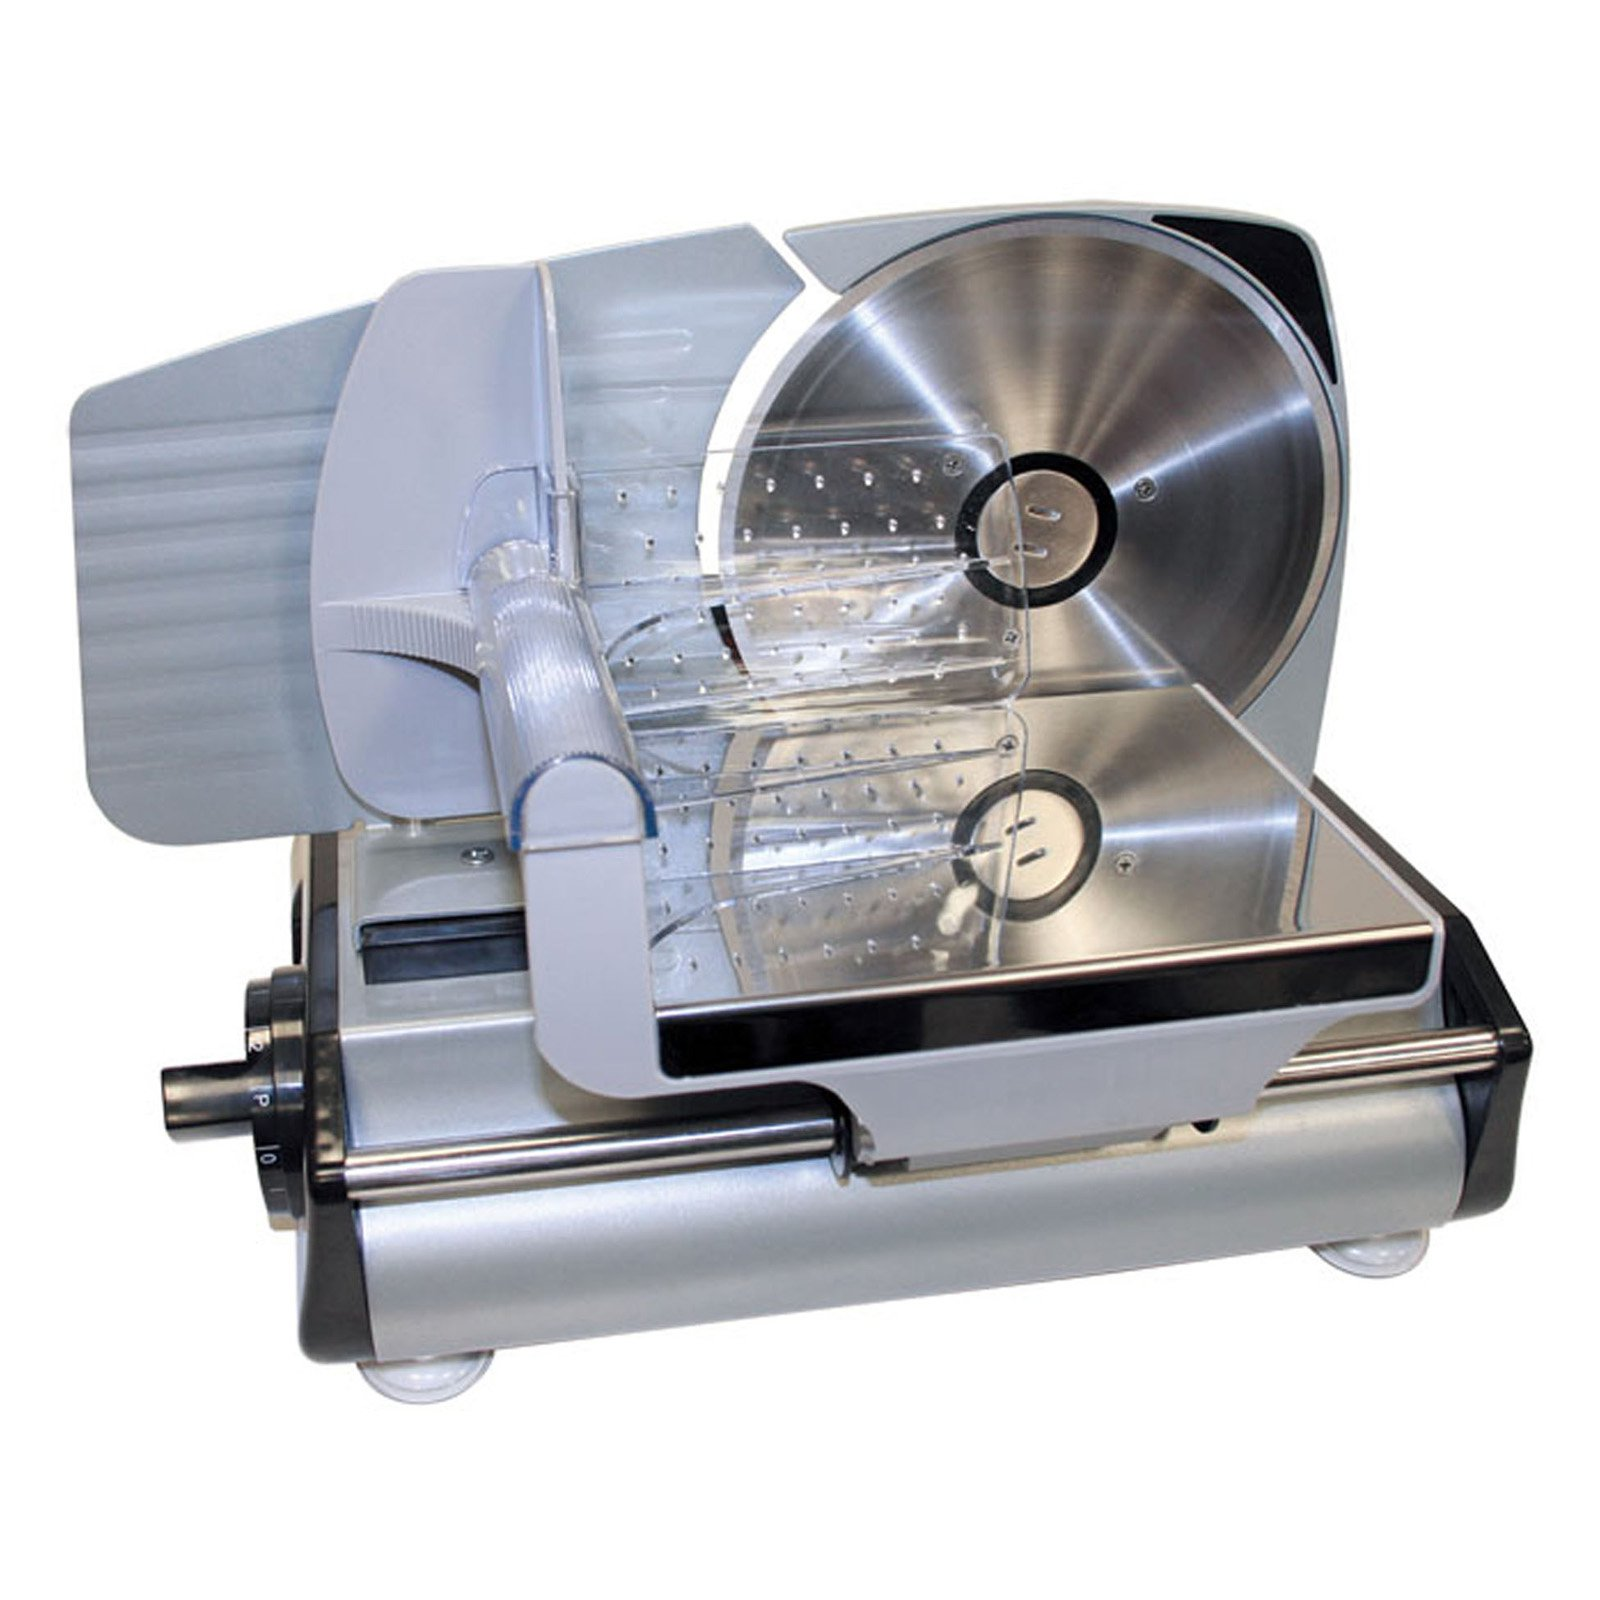 Sportsman Series Electric Meat Slicer by Buffalo Corp